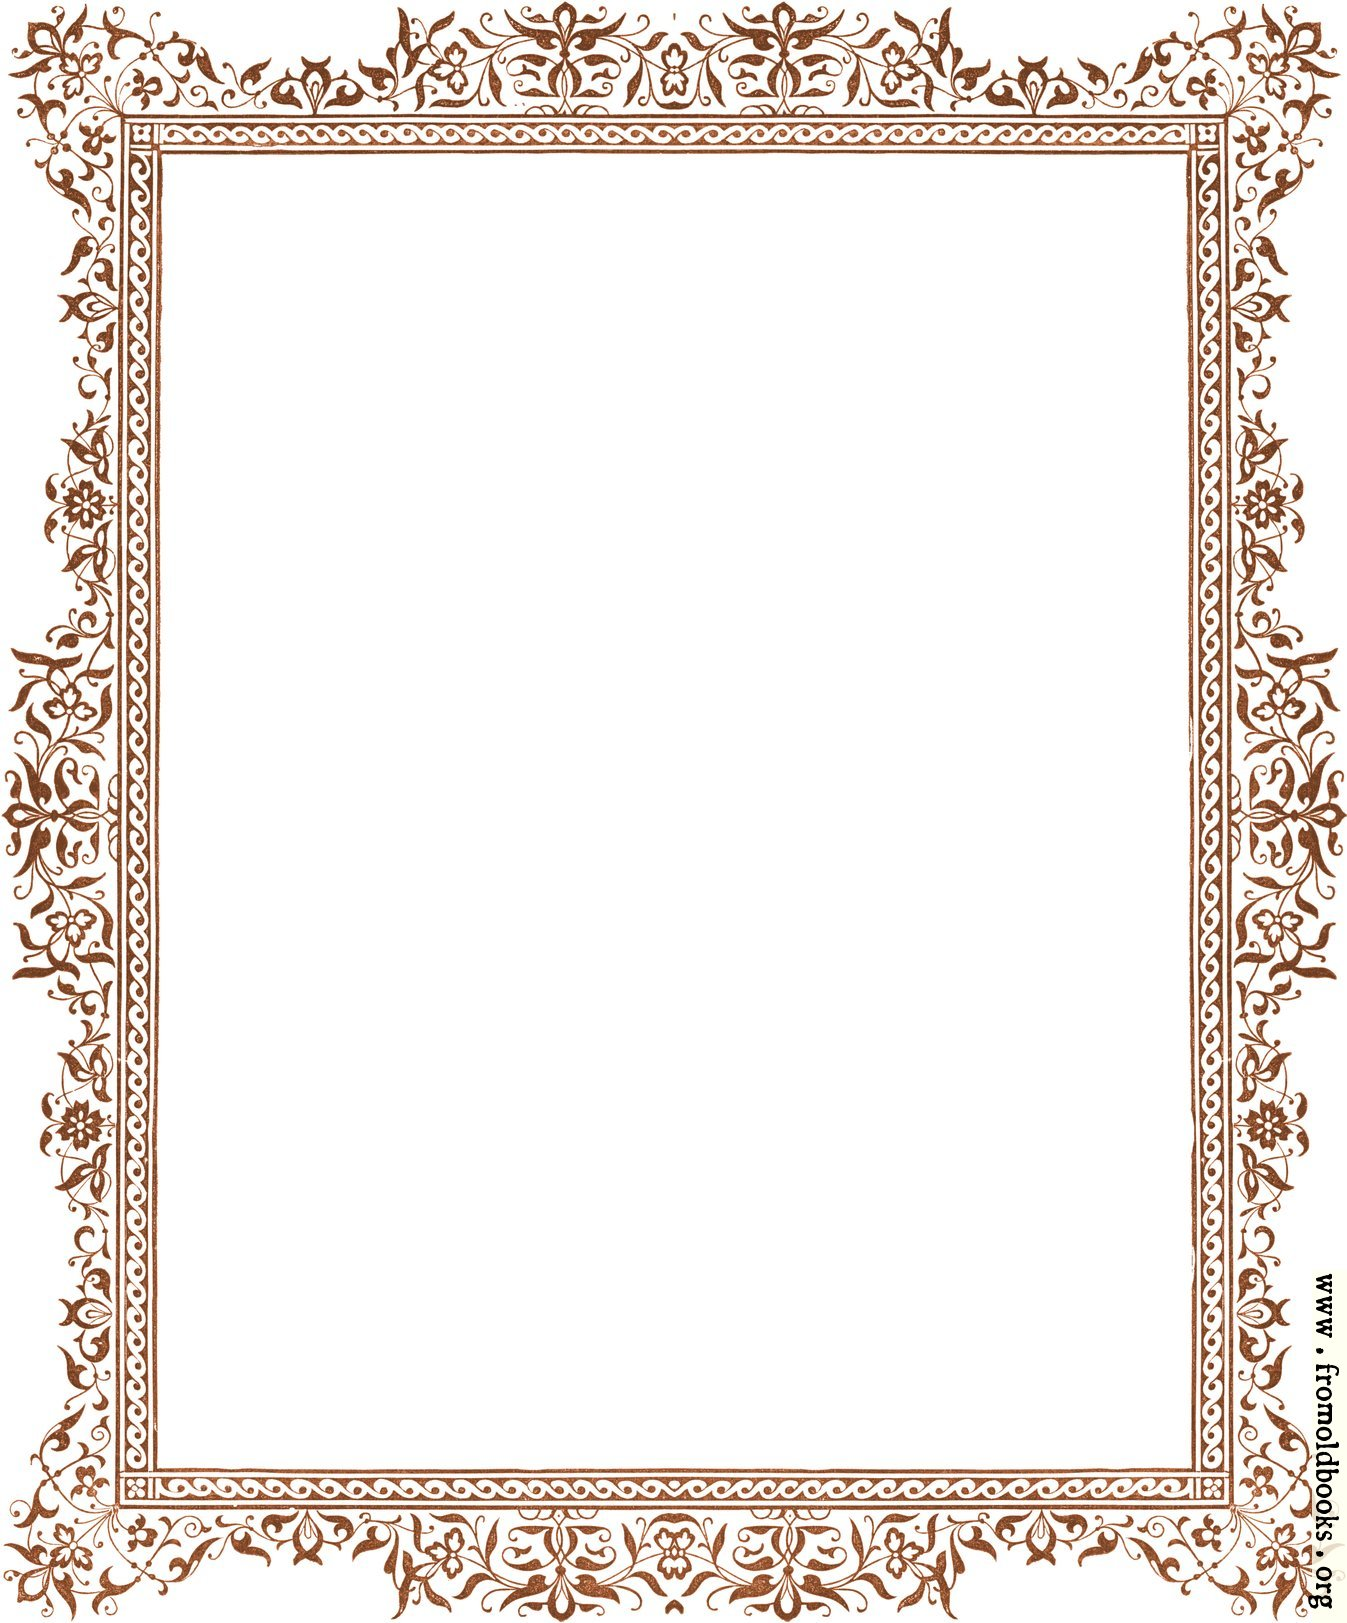 Decorative Clip Art Victorian Border Antique Brown Image